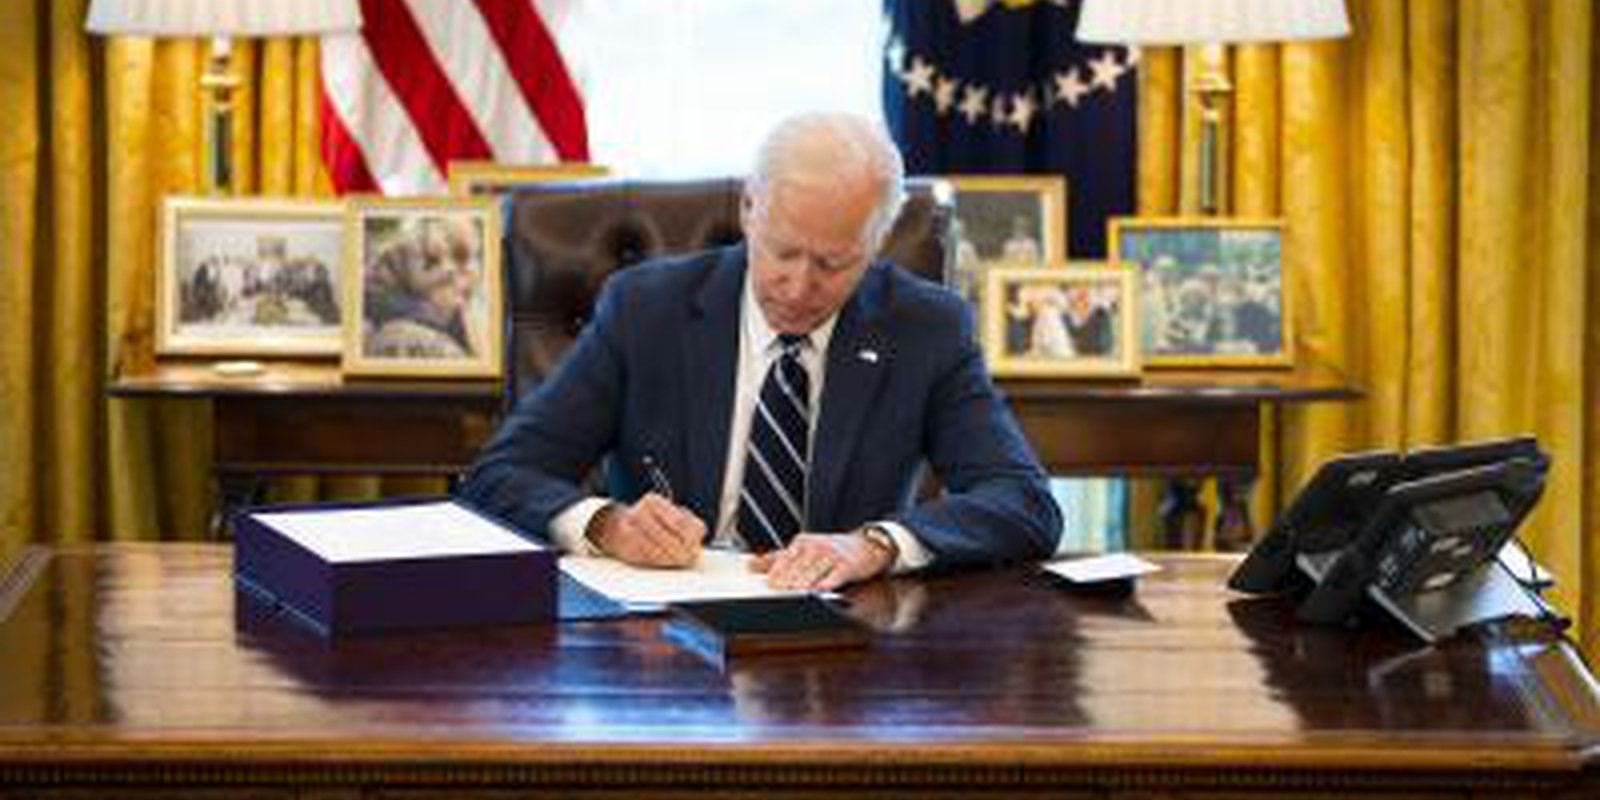 Image — US President, Joe Biden, signs theAmerican Rescue Plan into law on 11 March 2021 at the Oval Office. Photo: Getty Images.